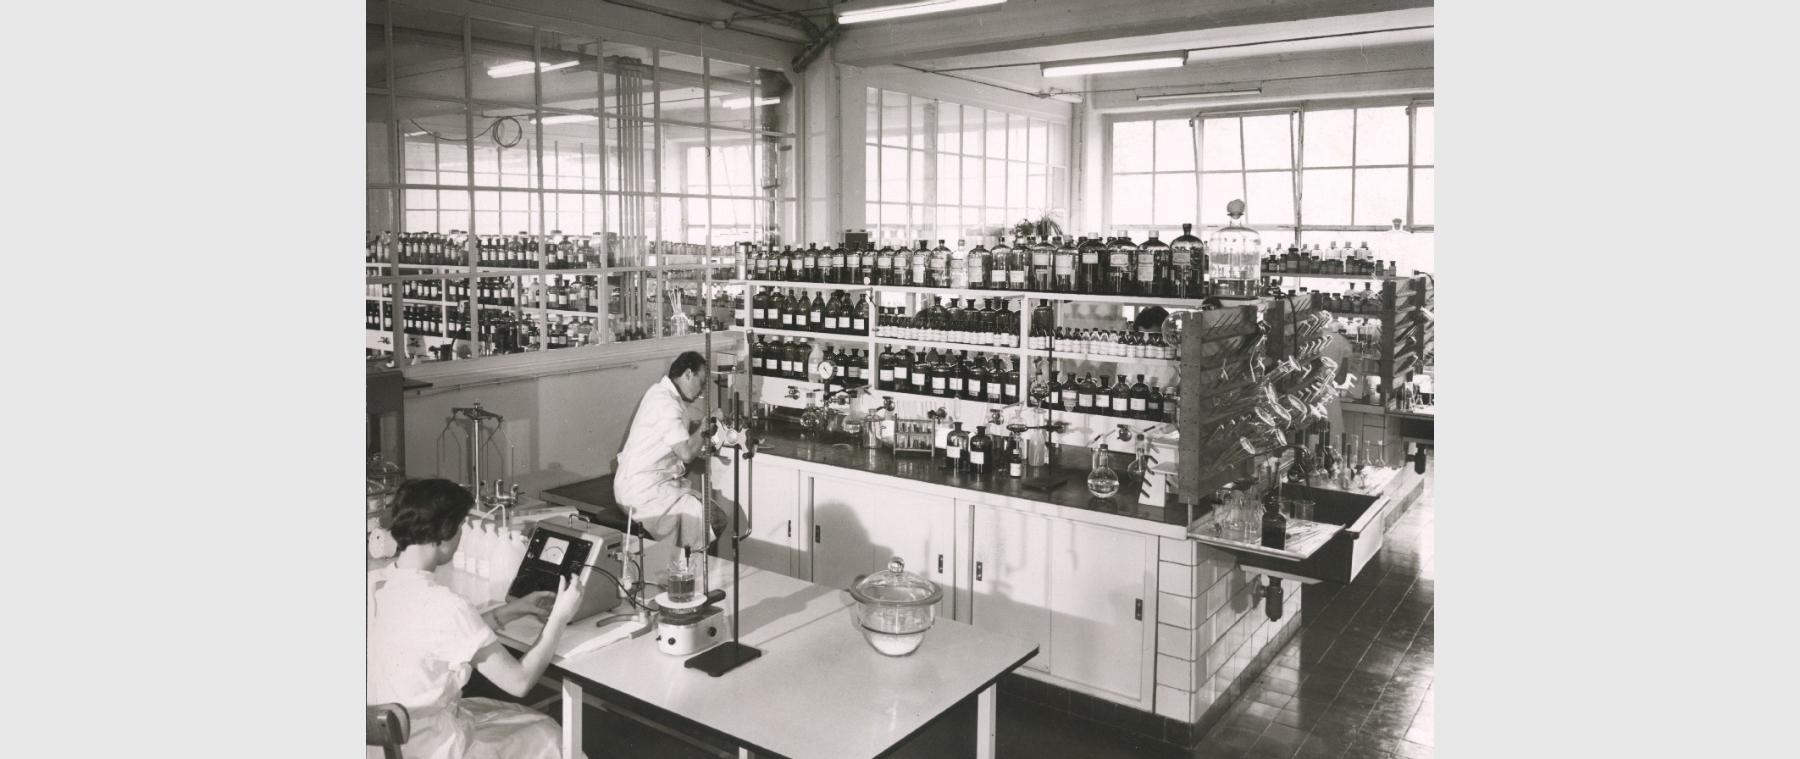 A Grünenthal research laboratory from 1965.